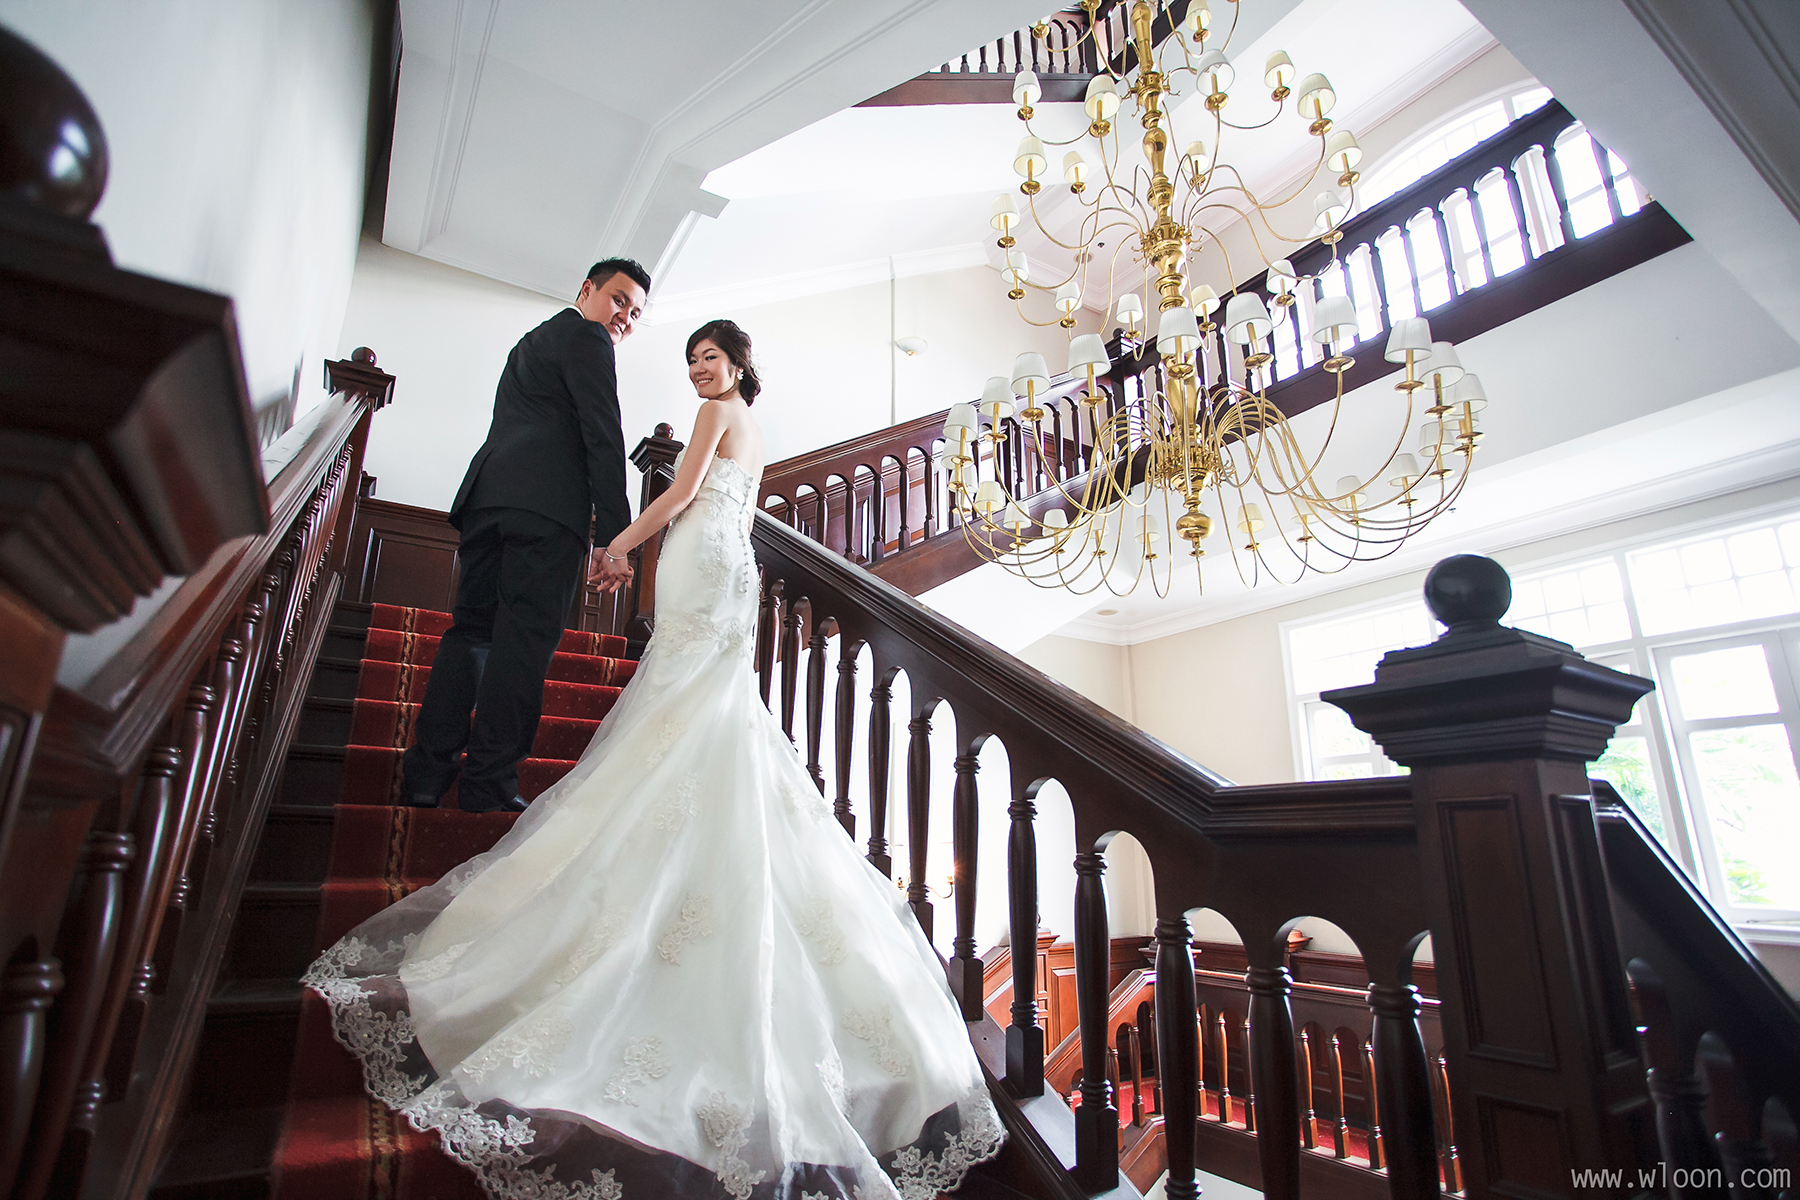 E&O hotel wedding | Malaysia & International Wedding Photographer